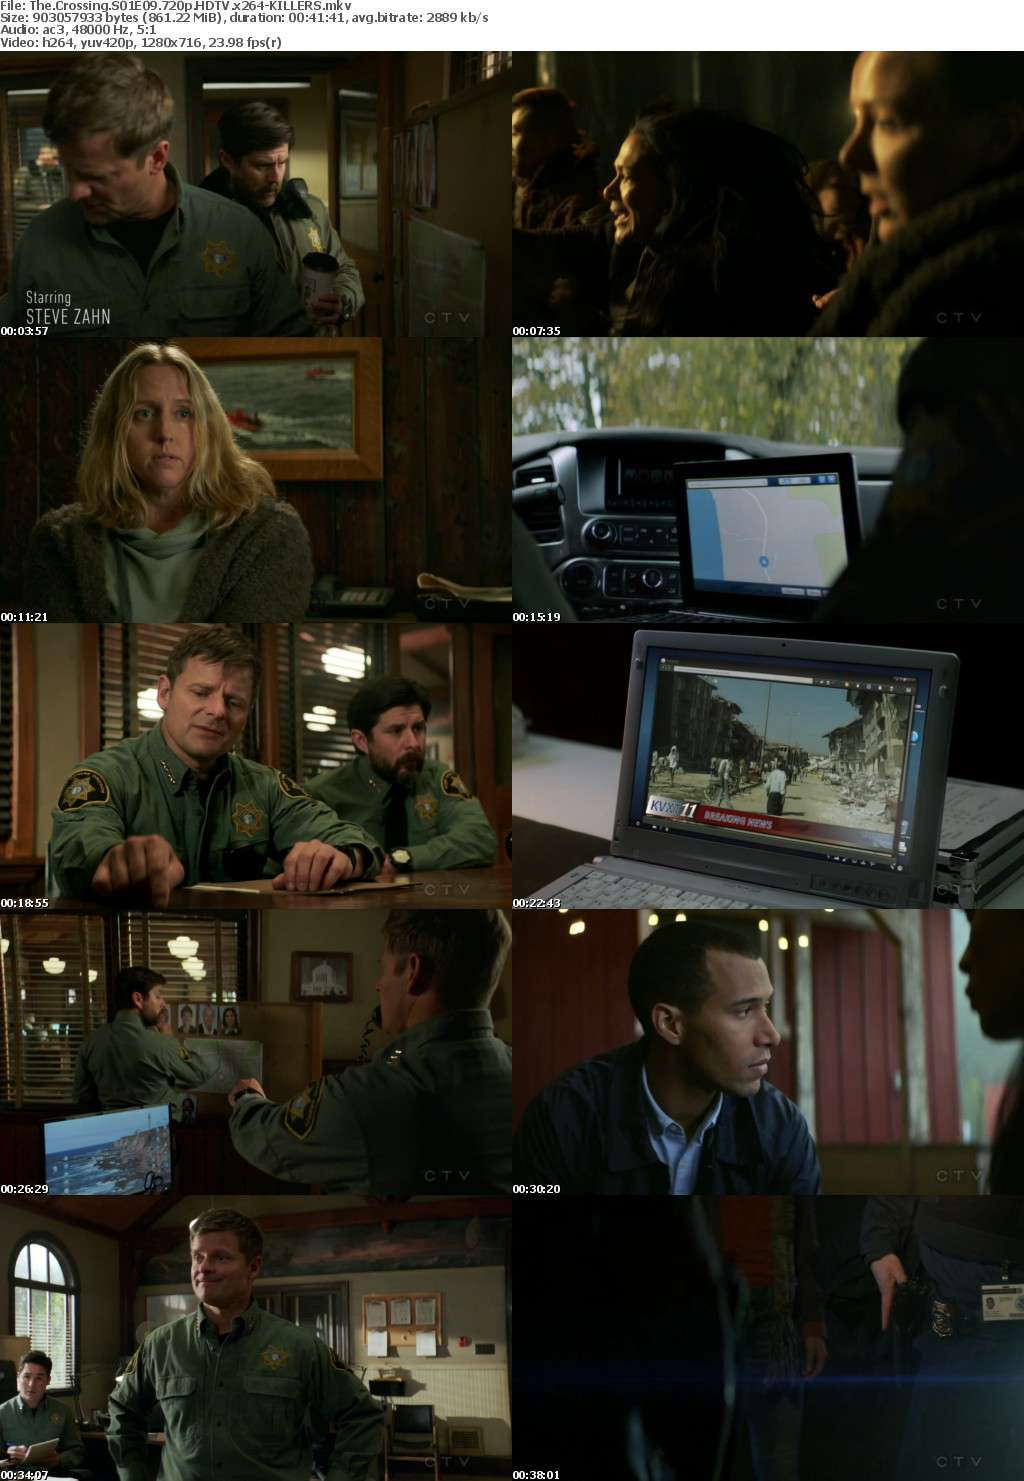 The Crossing S01E09 720p HDTV x264-KILLERS